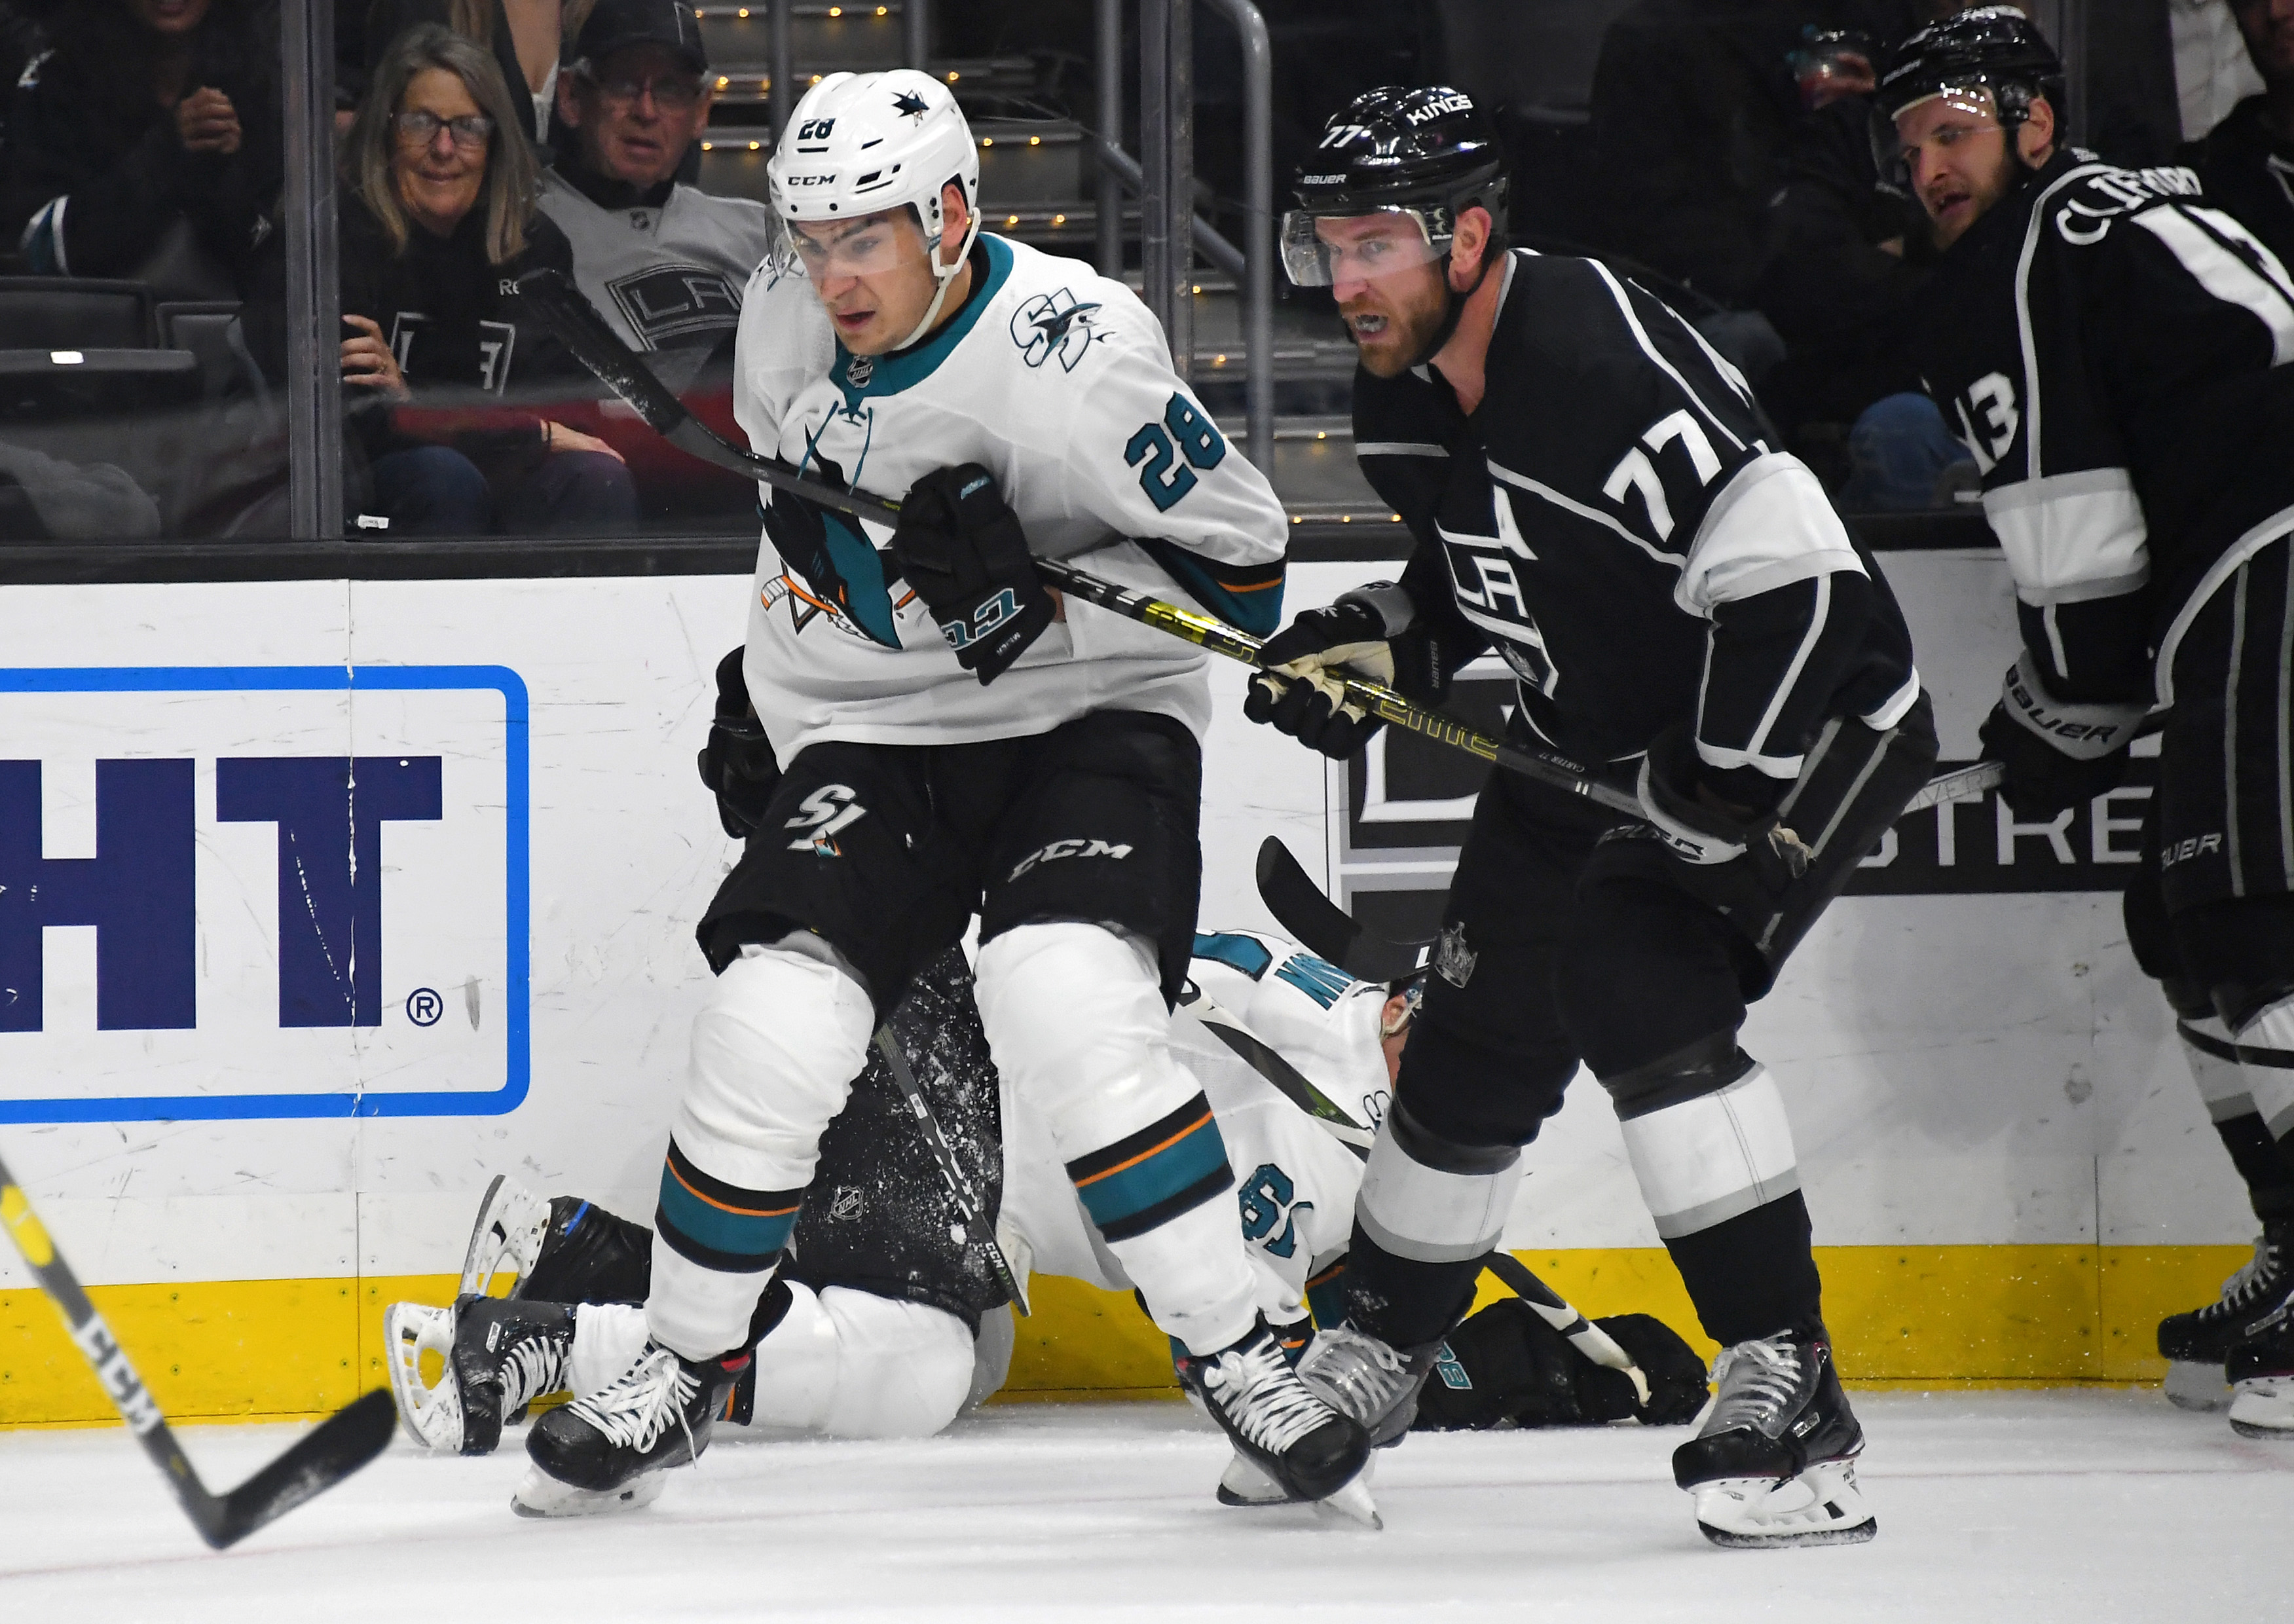 Mar 21, 2019; Los Angeles, CA, USA; Los Angeles Kings center Jeff Carter (77) and San Jose Sharks right wing Timo Meier (28) battle for position on the ice in the first period of the game at Staples Center. Mandatory Credit: Jayne Kamin-Oncea